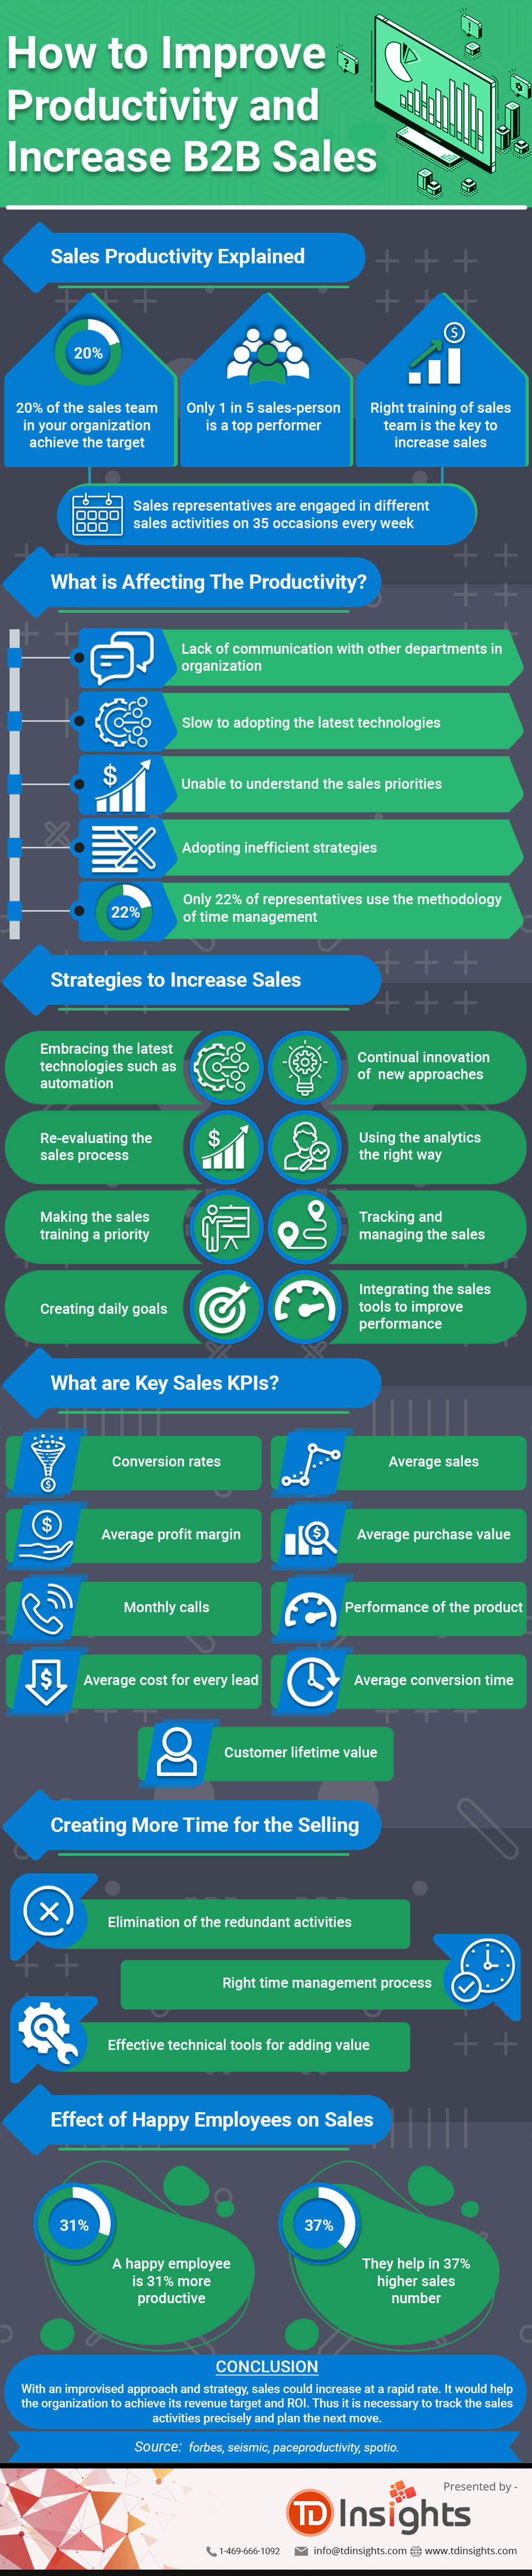 How to Increase B2B Companies Sales Productivity and Increase Sales